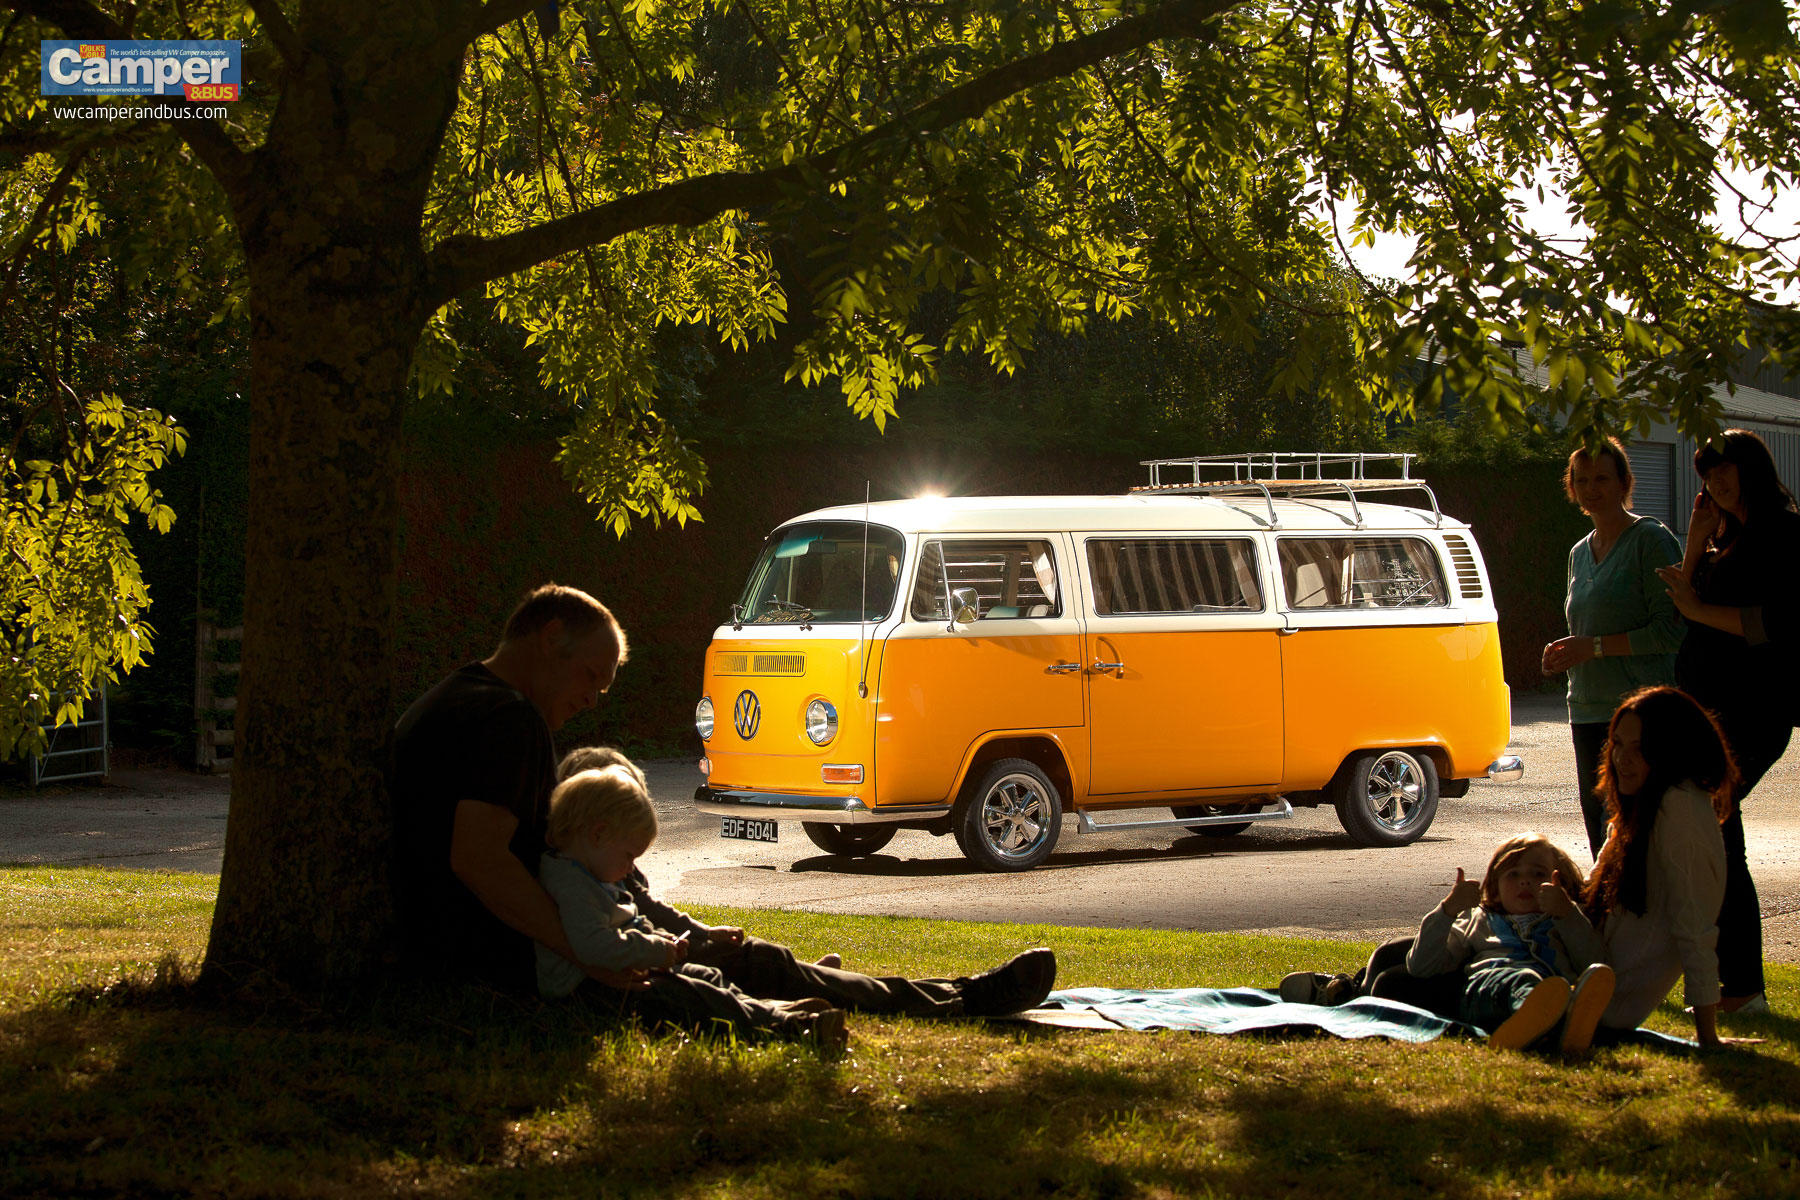 New VW CamperBus wallpaper downloads   VW Camper and Bus 1800x1200